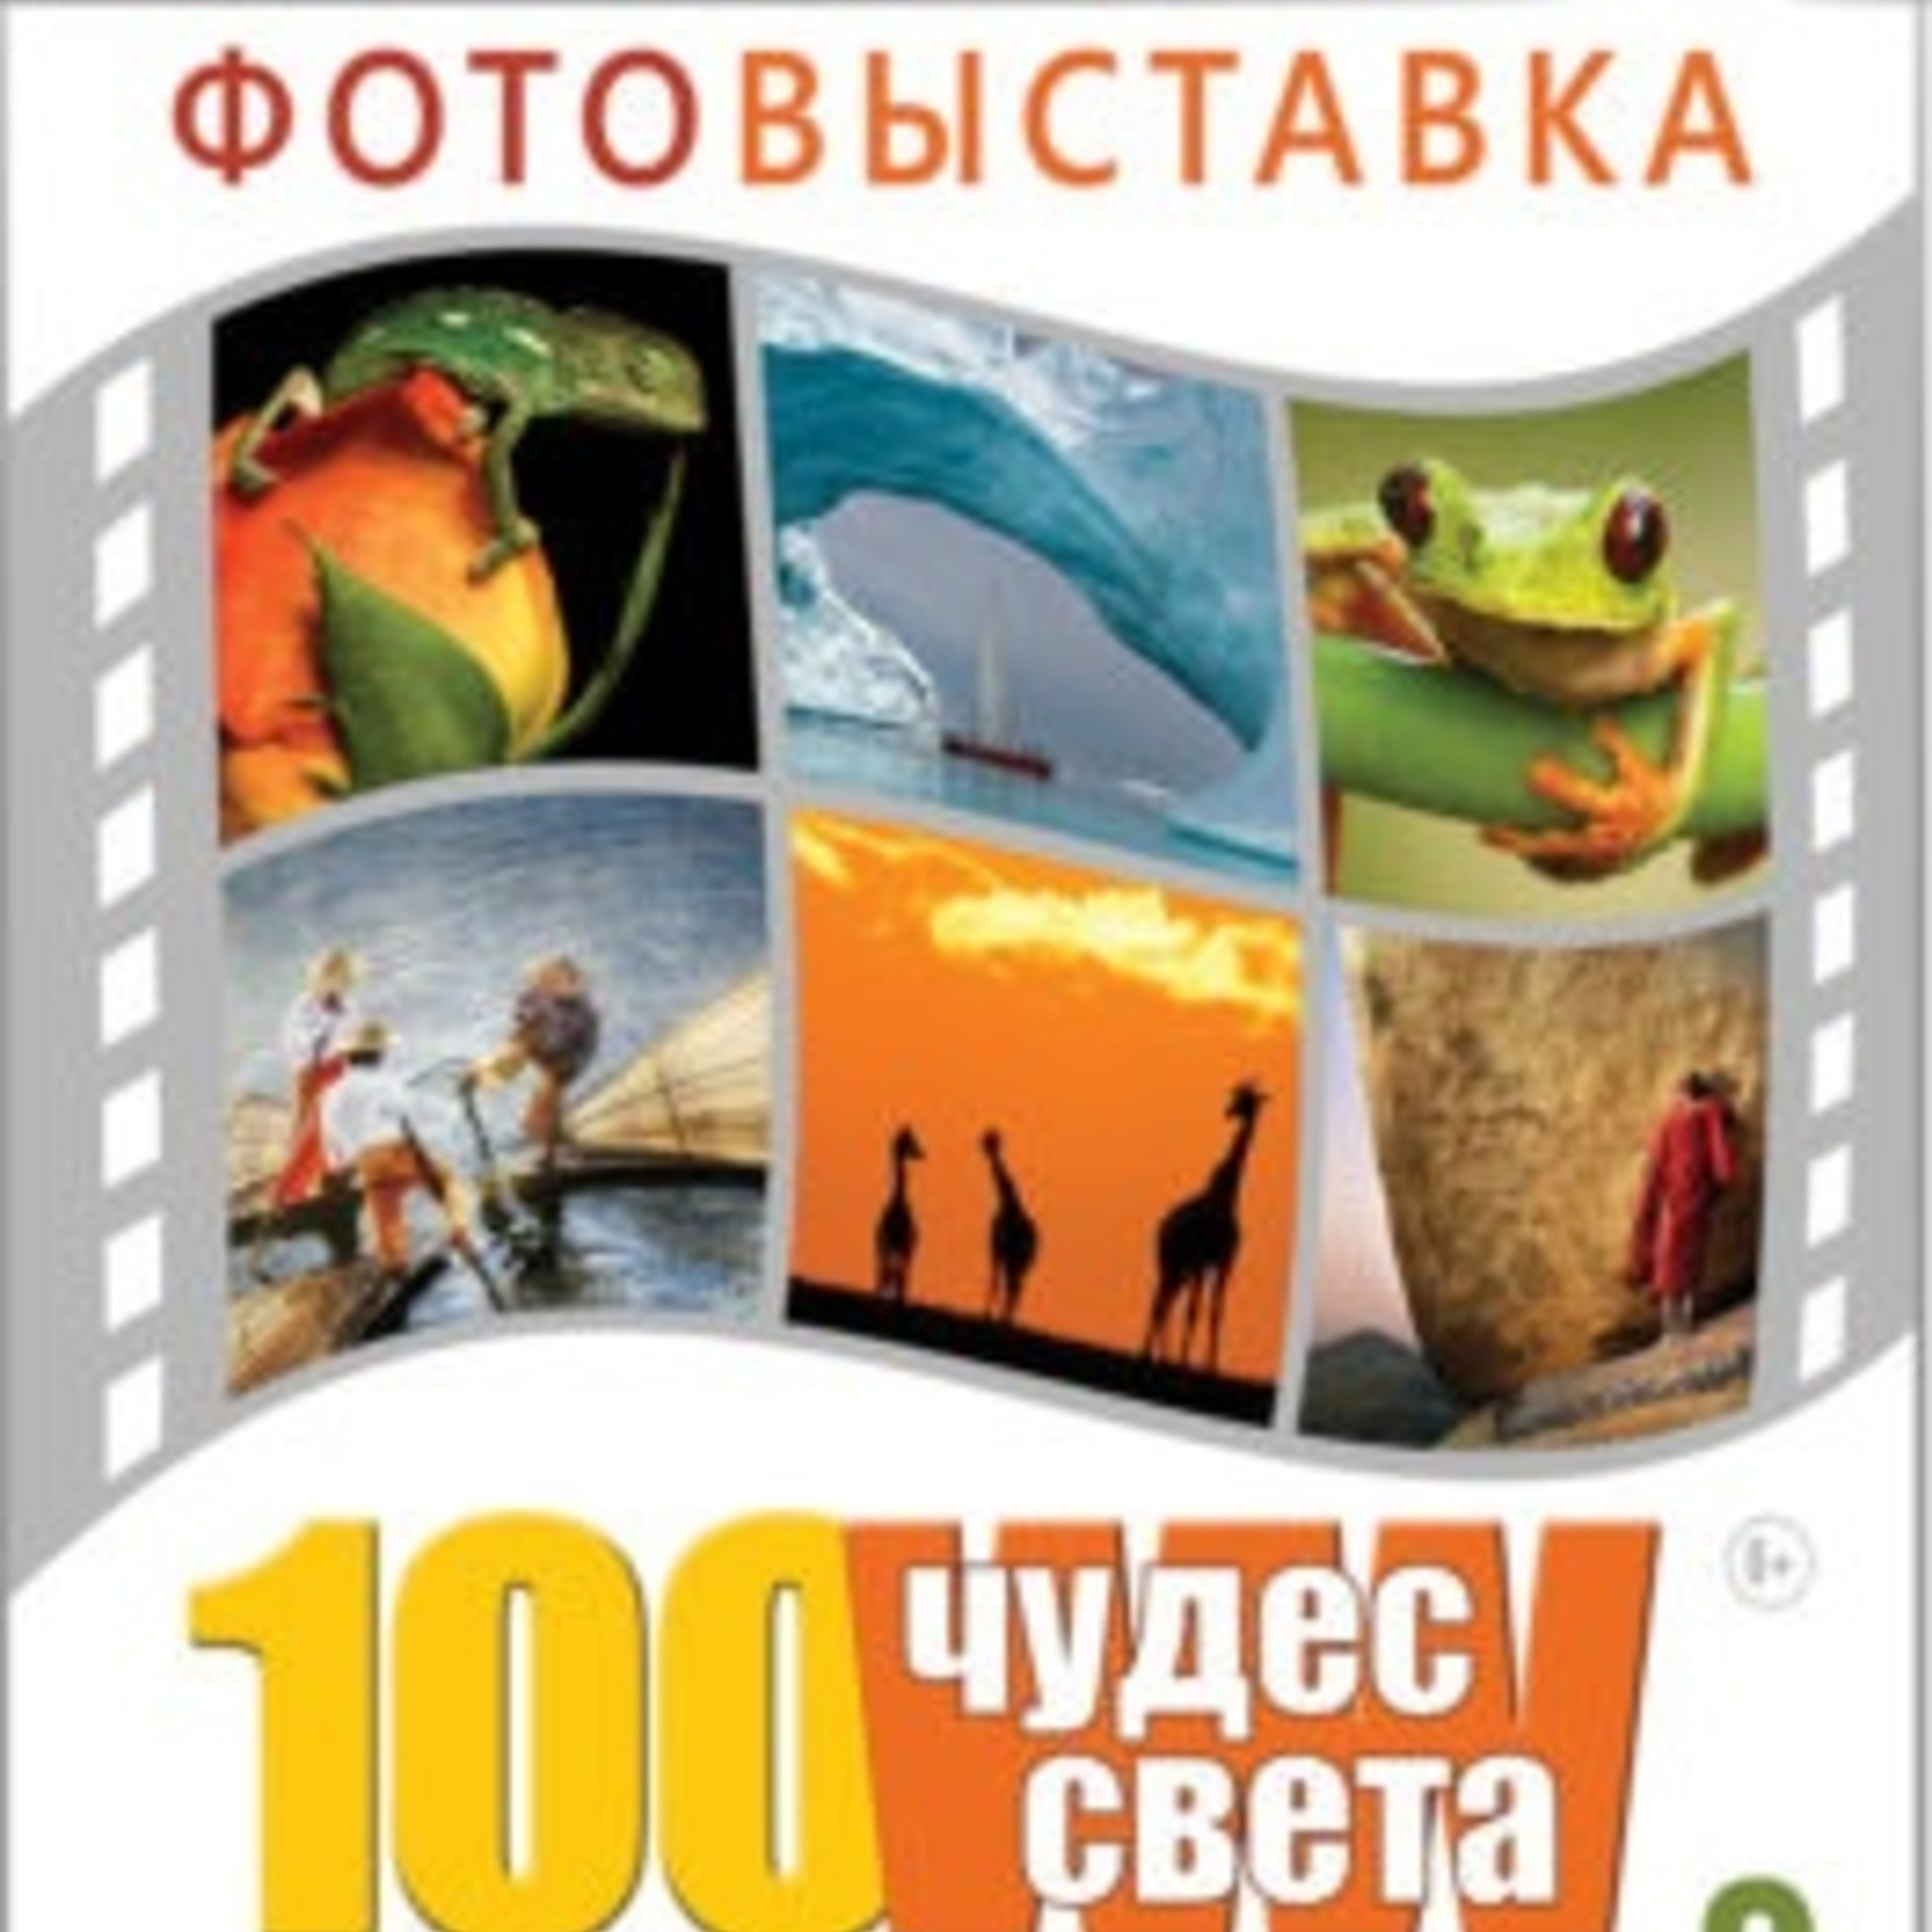 Photo exhibition 100 wonders of the world. Favorites